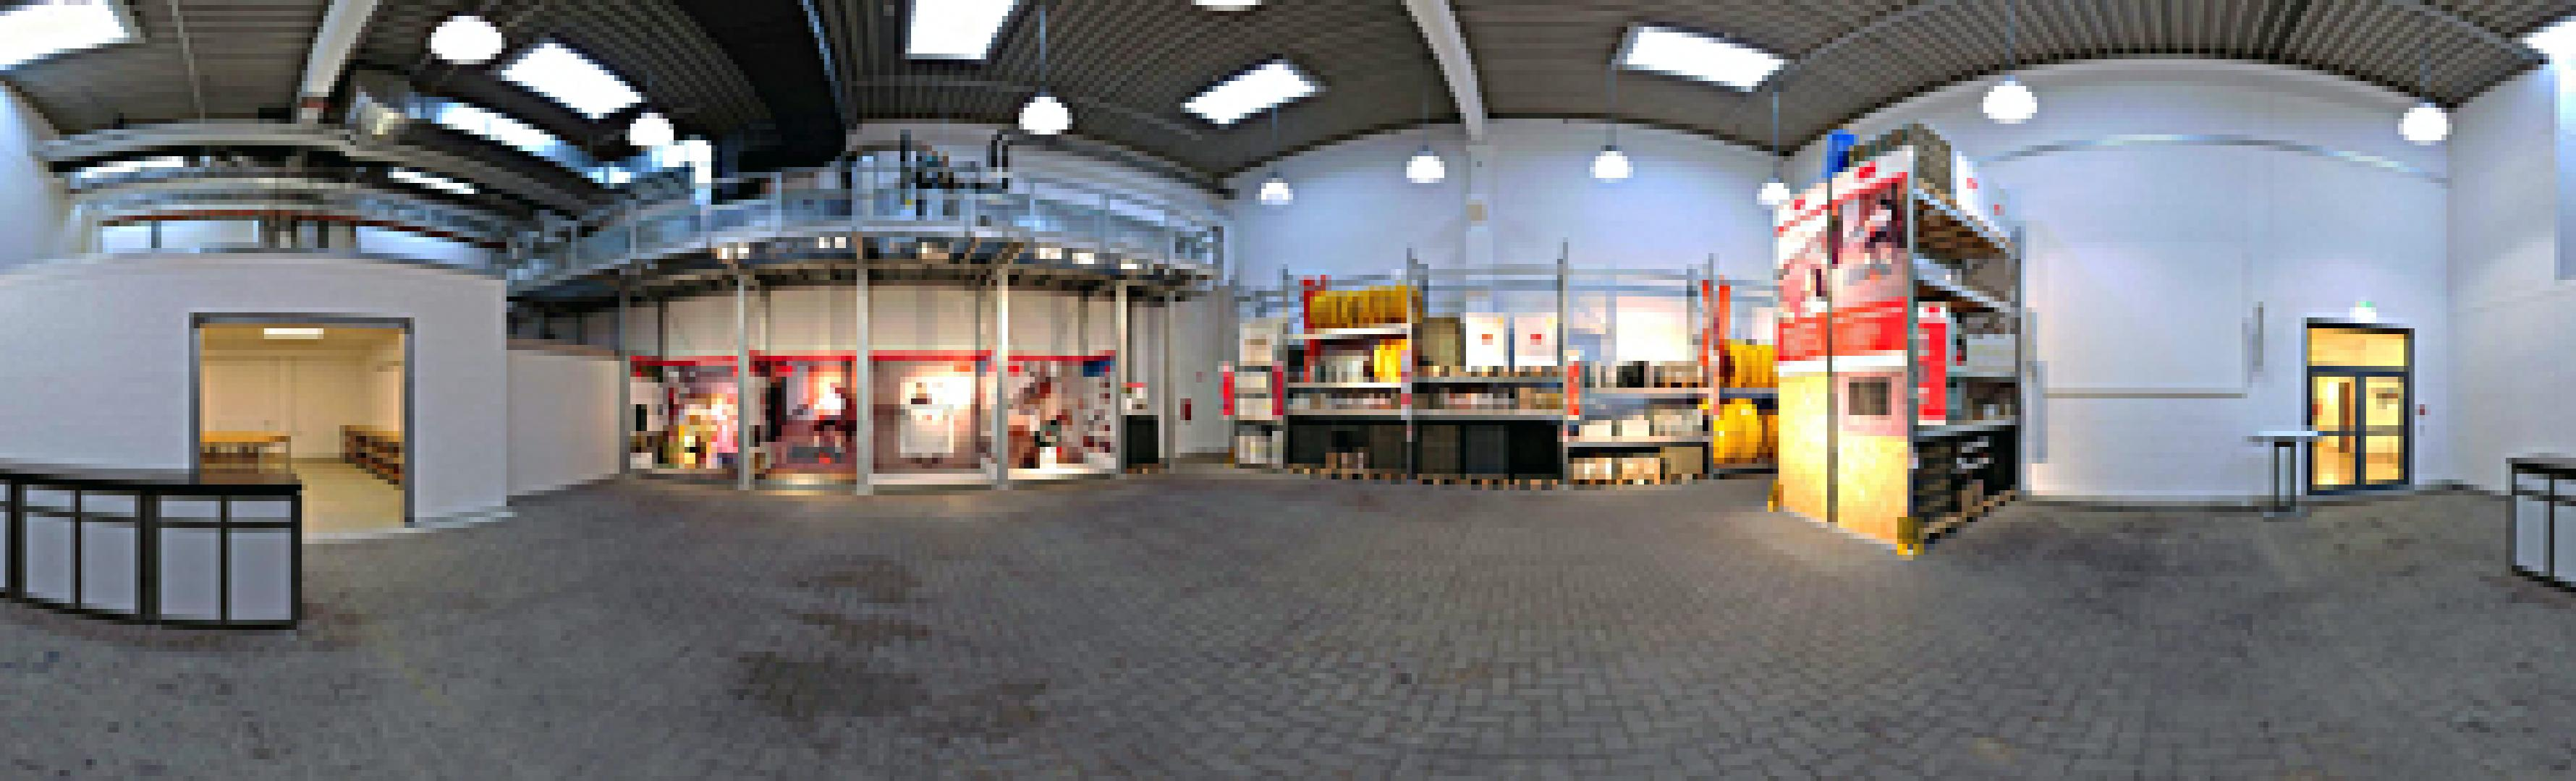 Picture 1 of Retail & Marketing Center